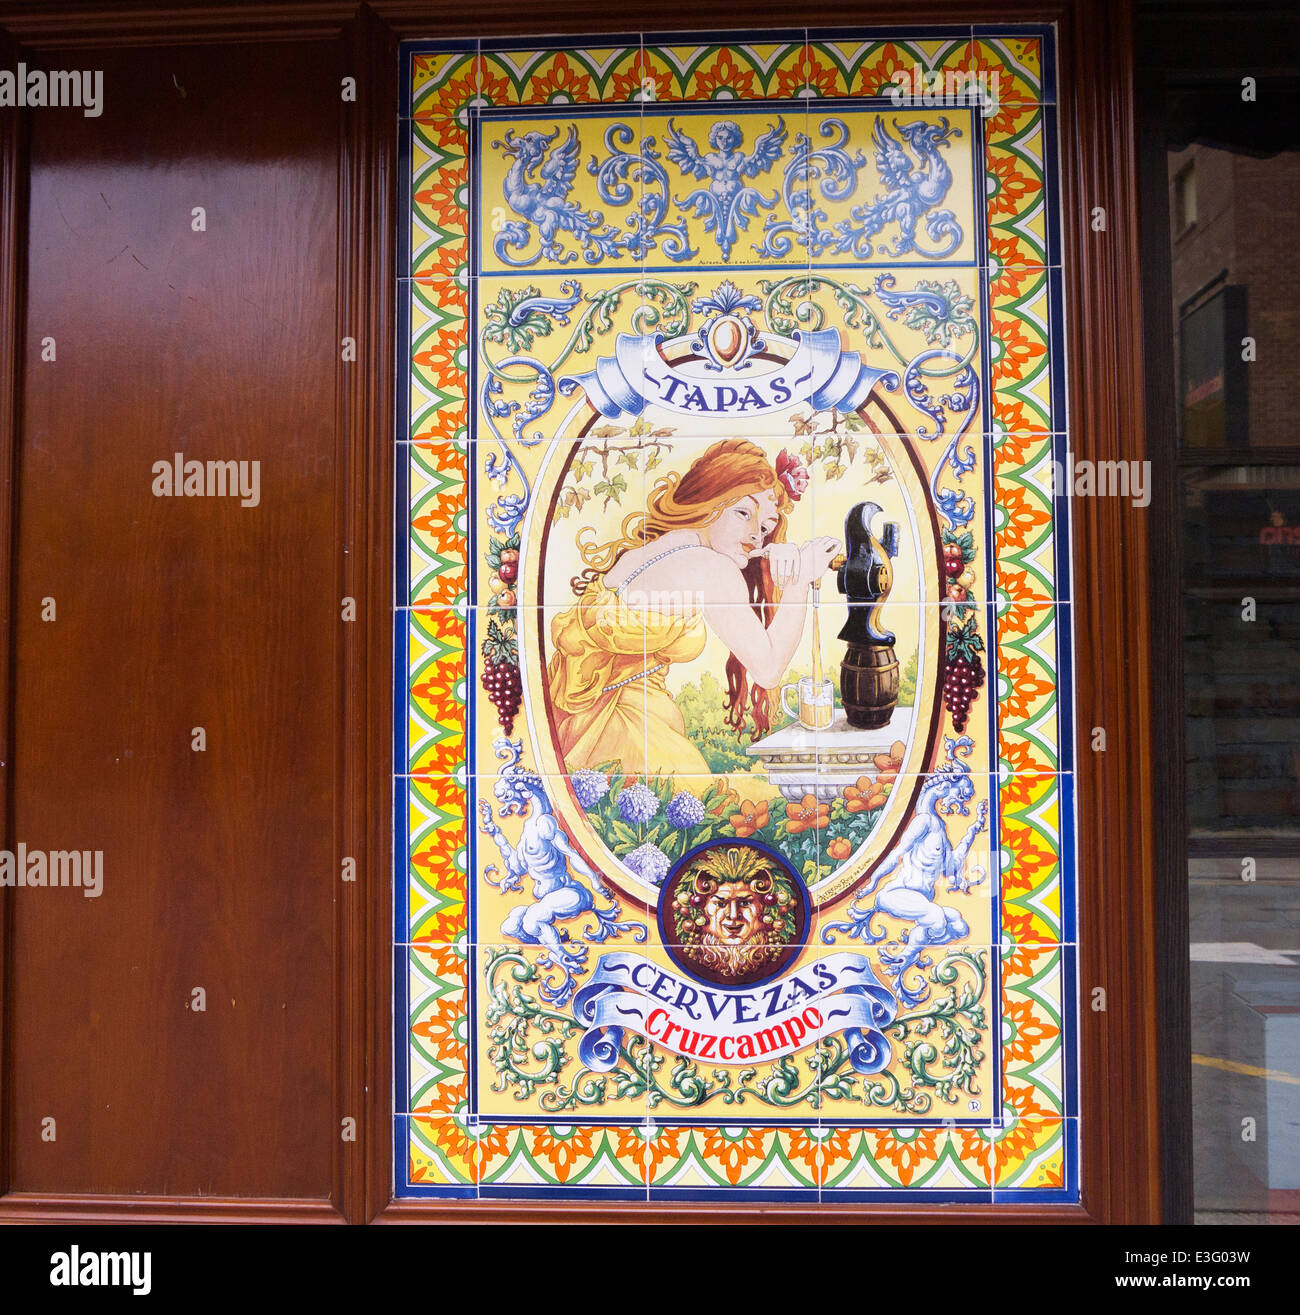 Ceramic tiles with art nouveau style in benidorm costa blanca spain ceramic tiles with art nouveau style in benidorm costa blanca spain dailygadgetfo Choice Image